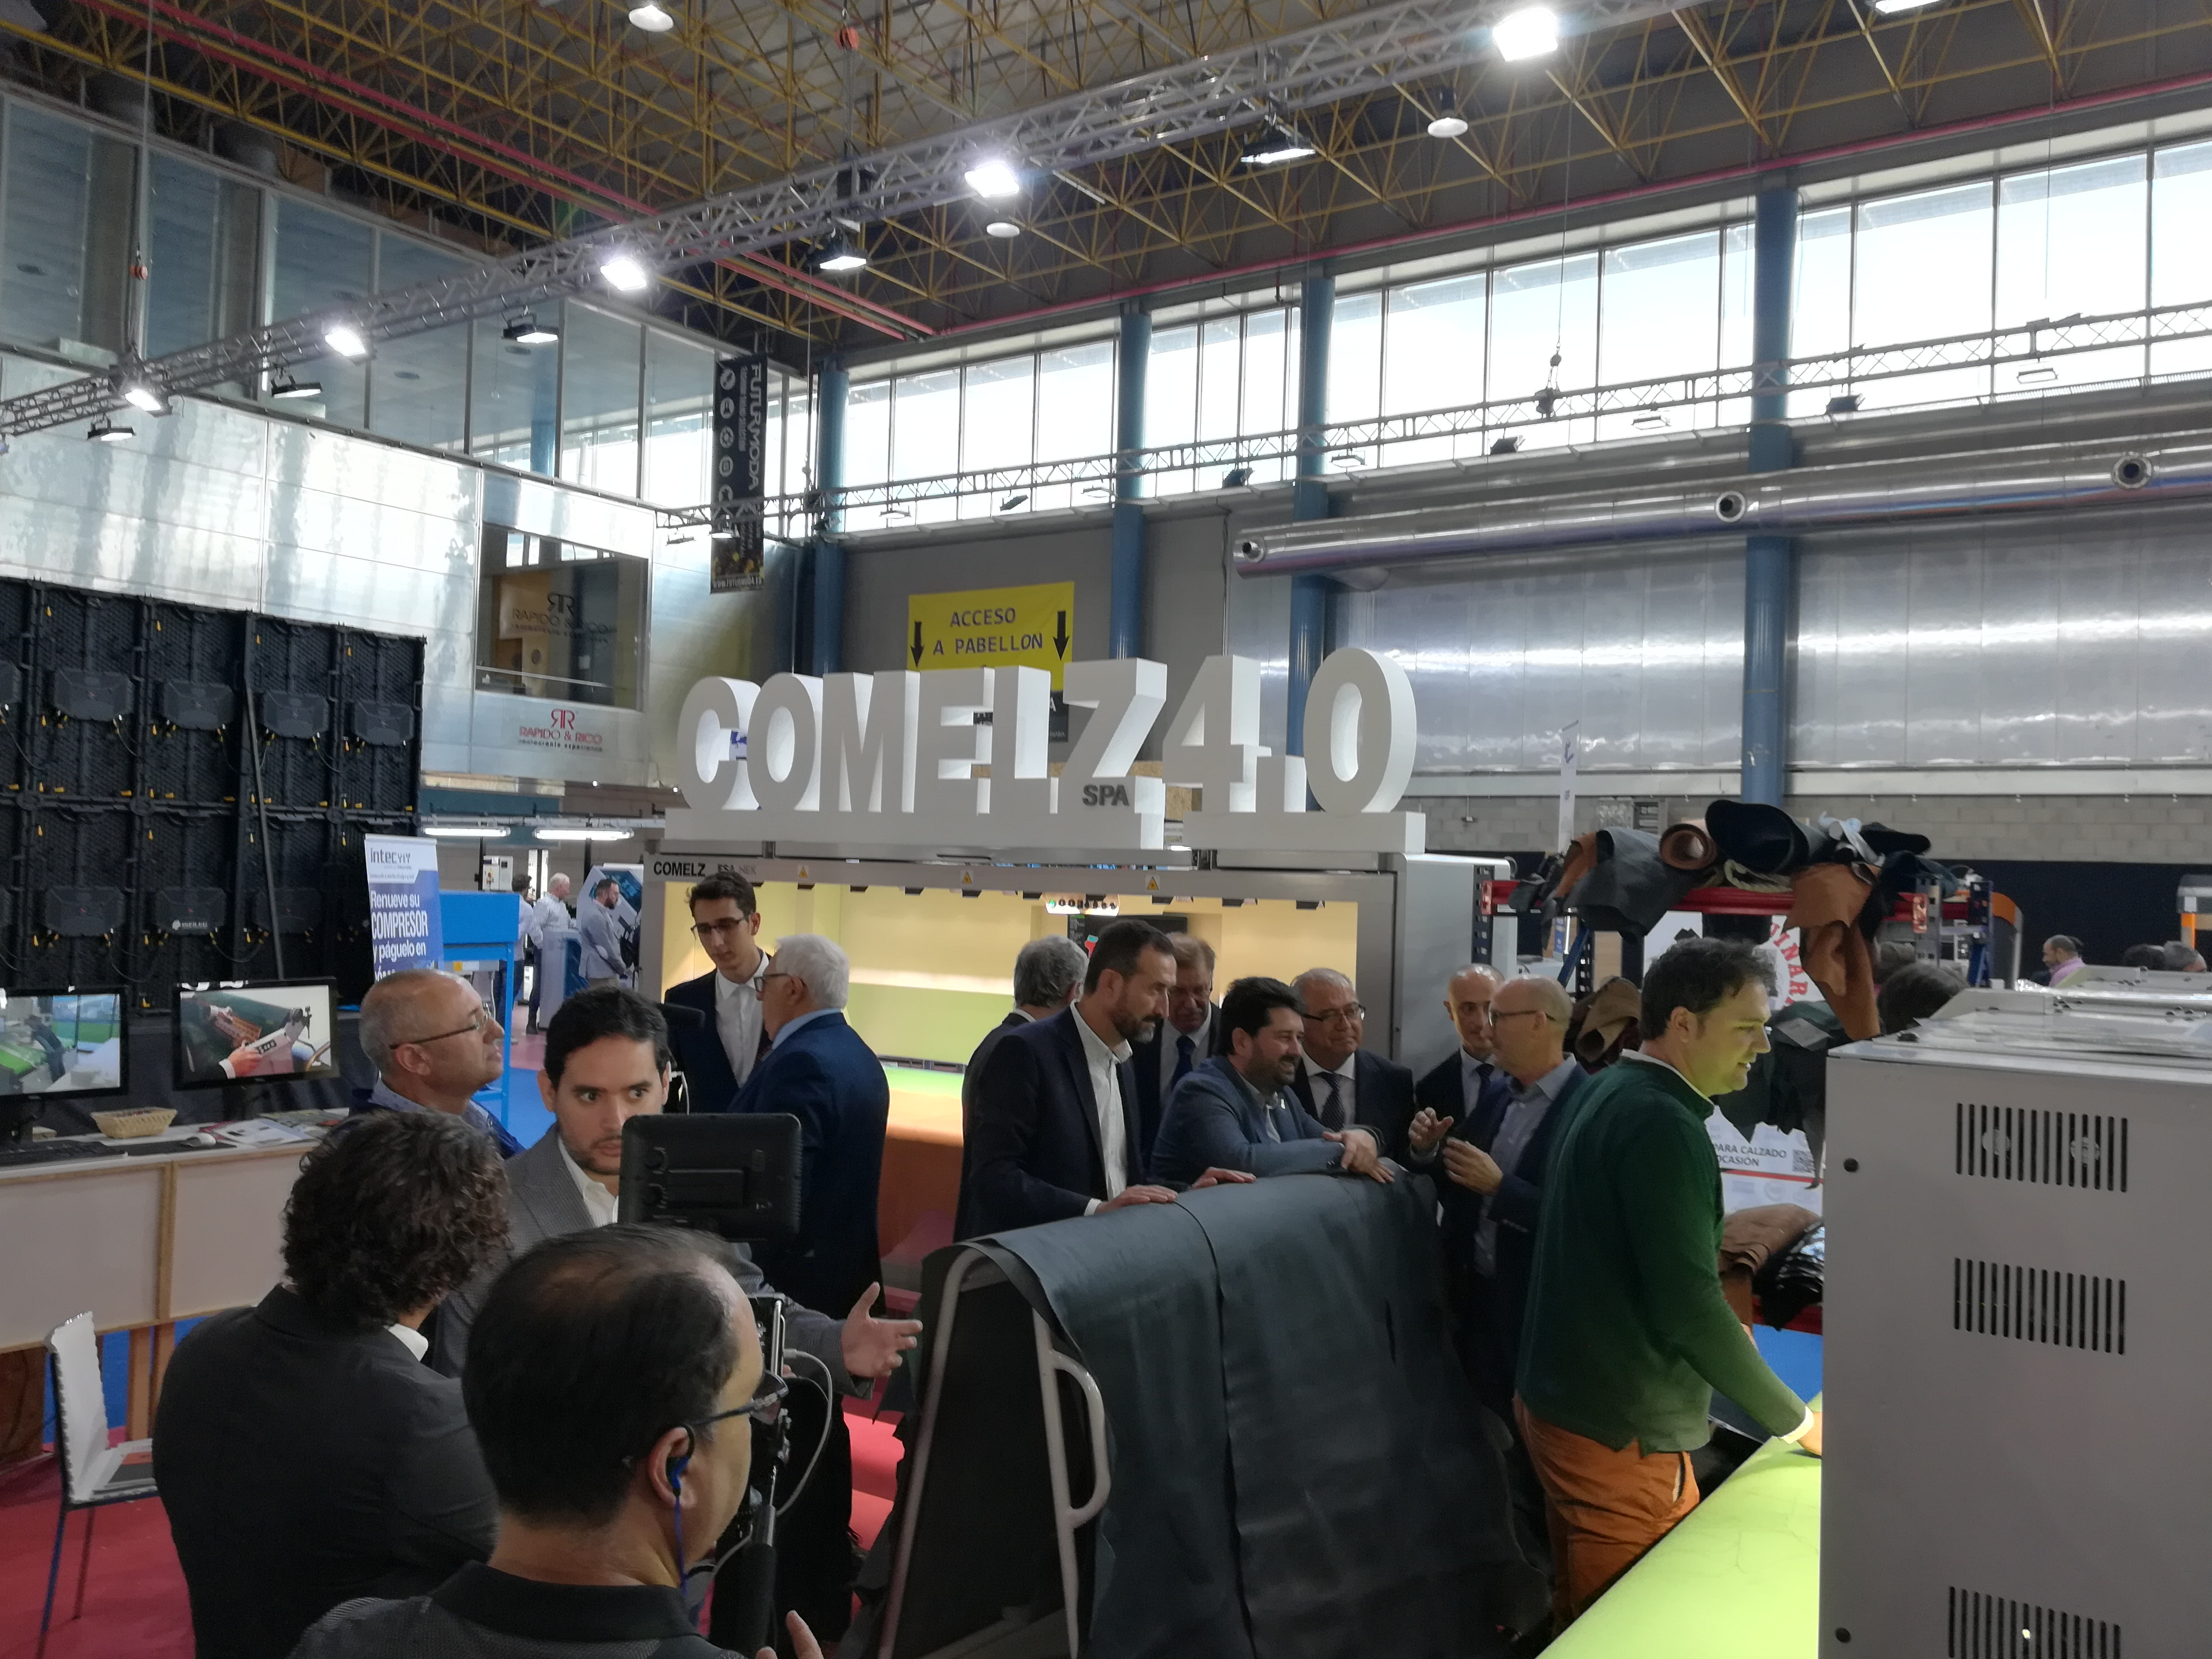 COMELZ STAND 1